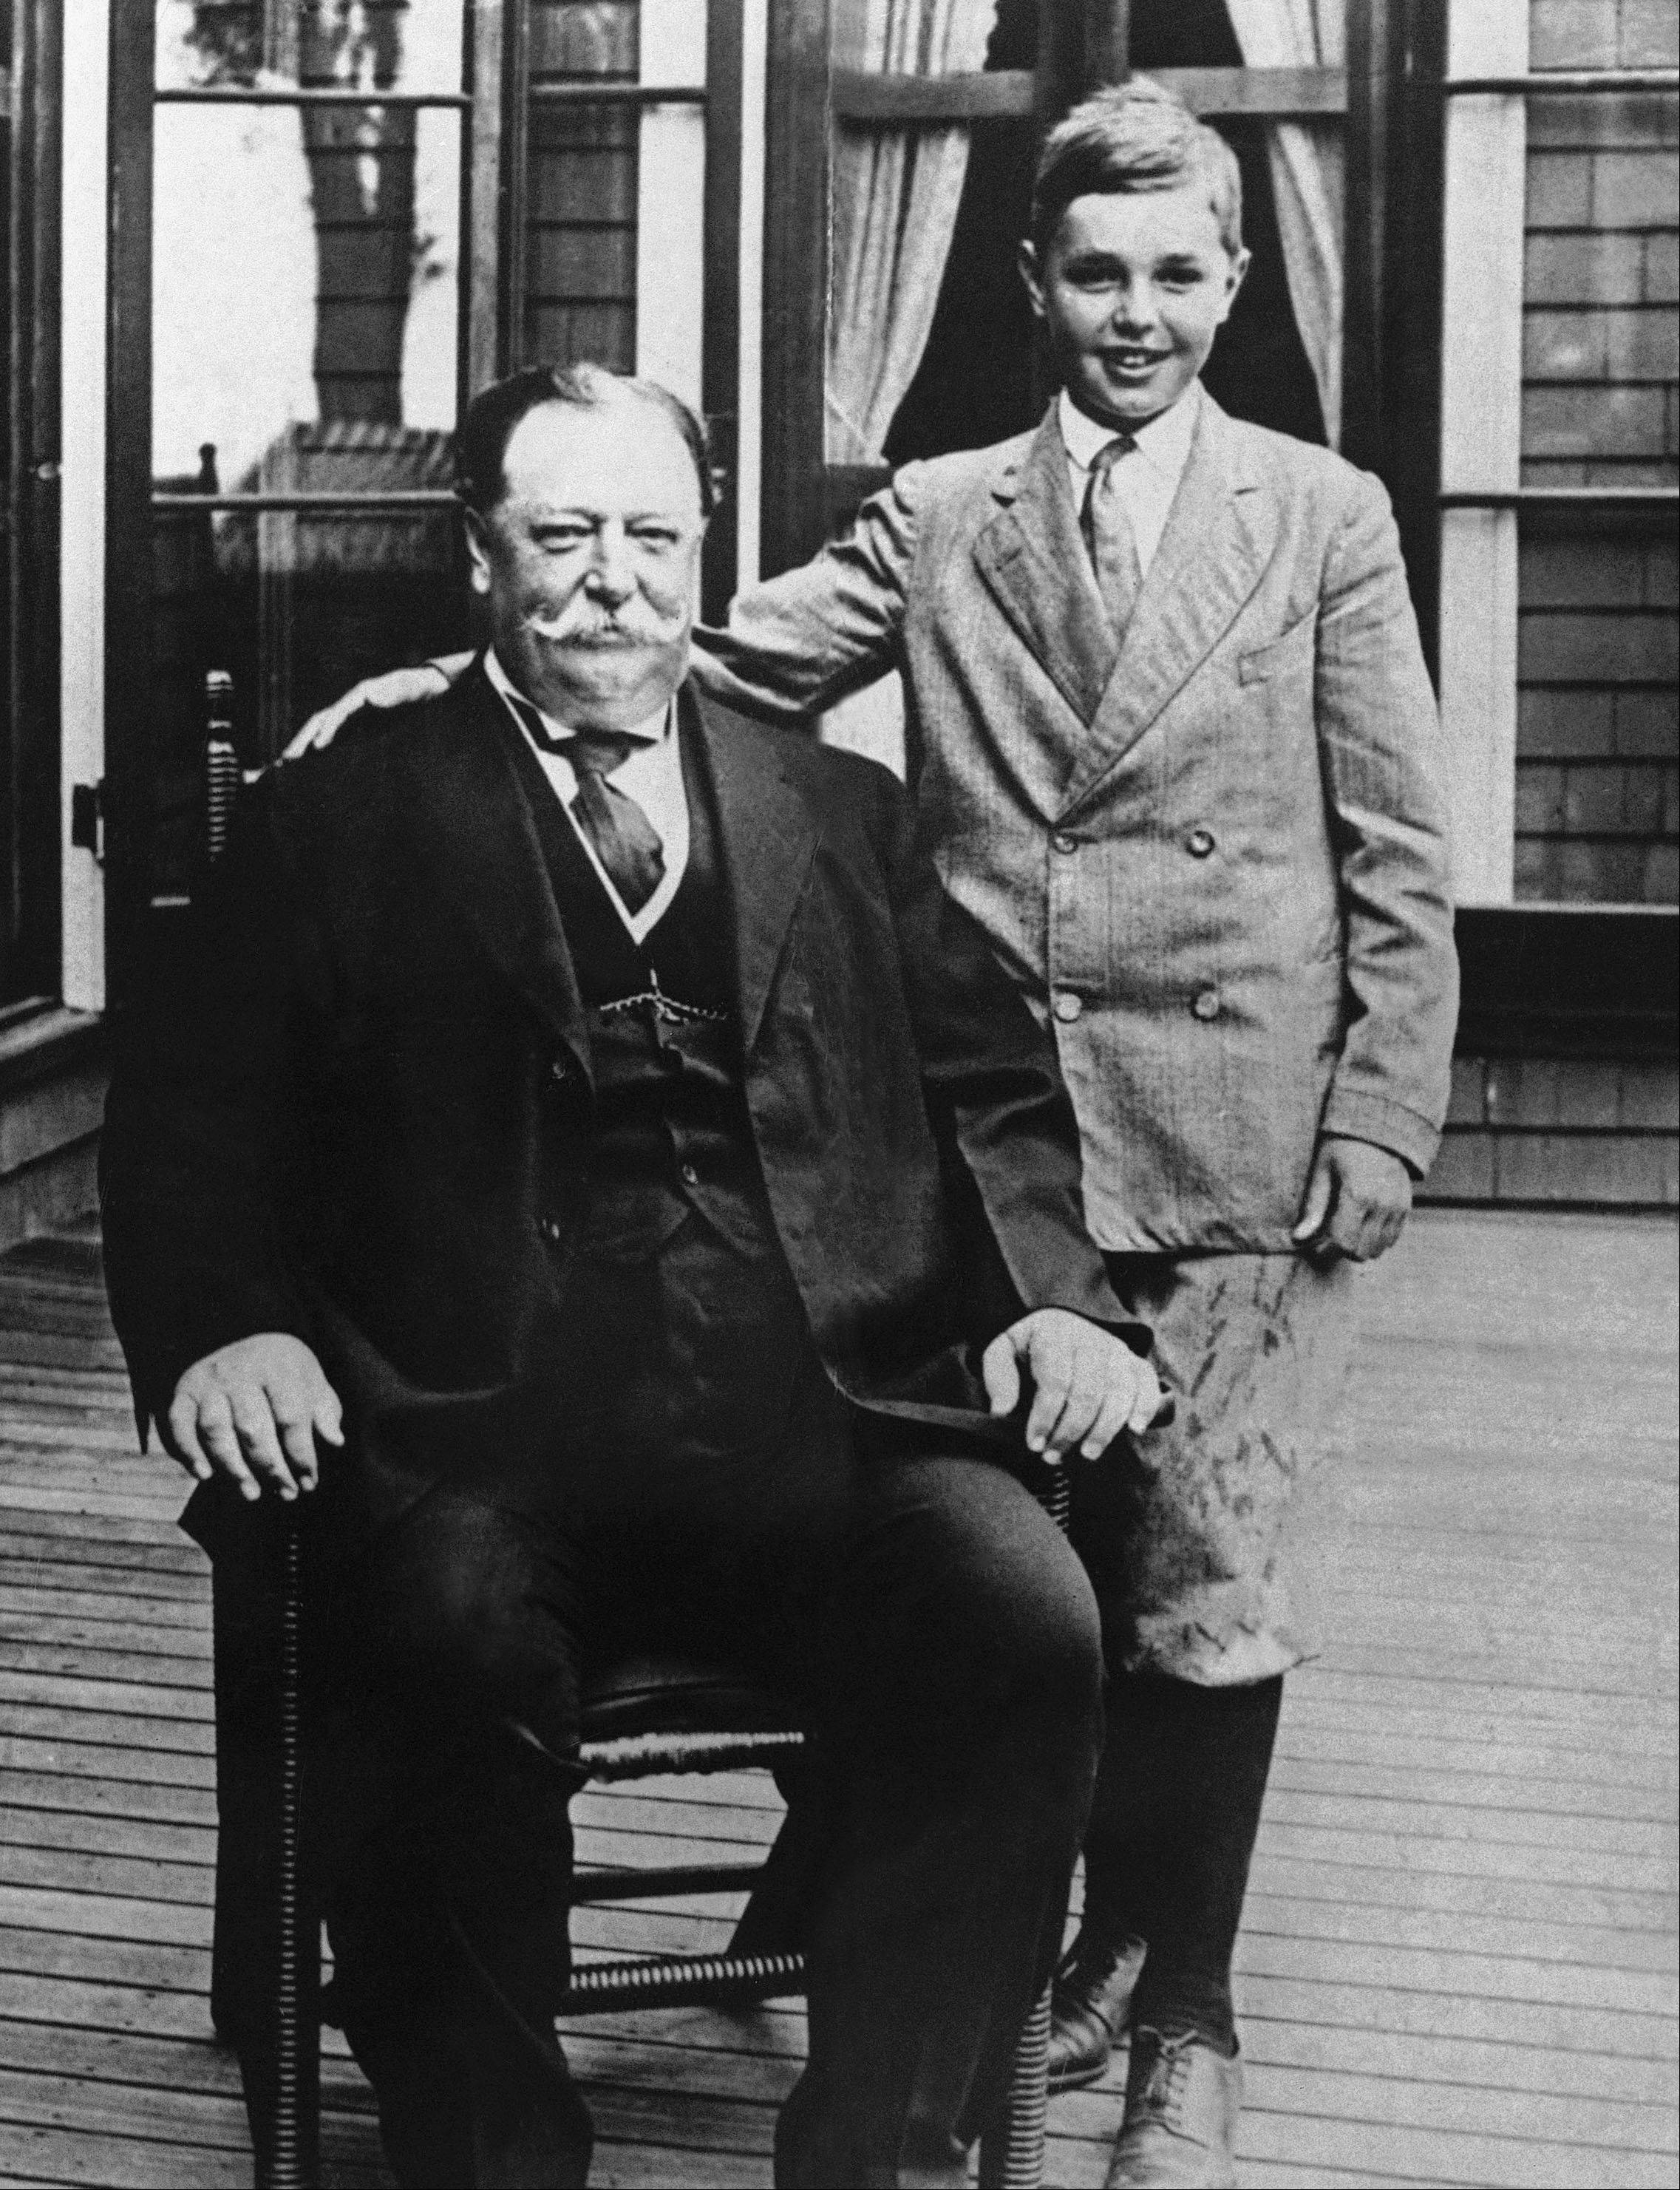 This photo shows President William Howard Taft with his son Charles while on vacation in Beverly, Mass. History buffs know Taft is the only president to later become Supreme Court chief justice, but he�s also remembered as the president whose weight, at times well over 300 pounds, made headlines. Yet in the early 1900s, way before Weight Watchers, the nation�s 27th president was helping to usher in a modern approach to treating obesity according to a report released Oct. 14 in the journal Annals of Internal Medicine.